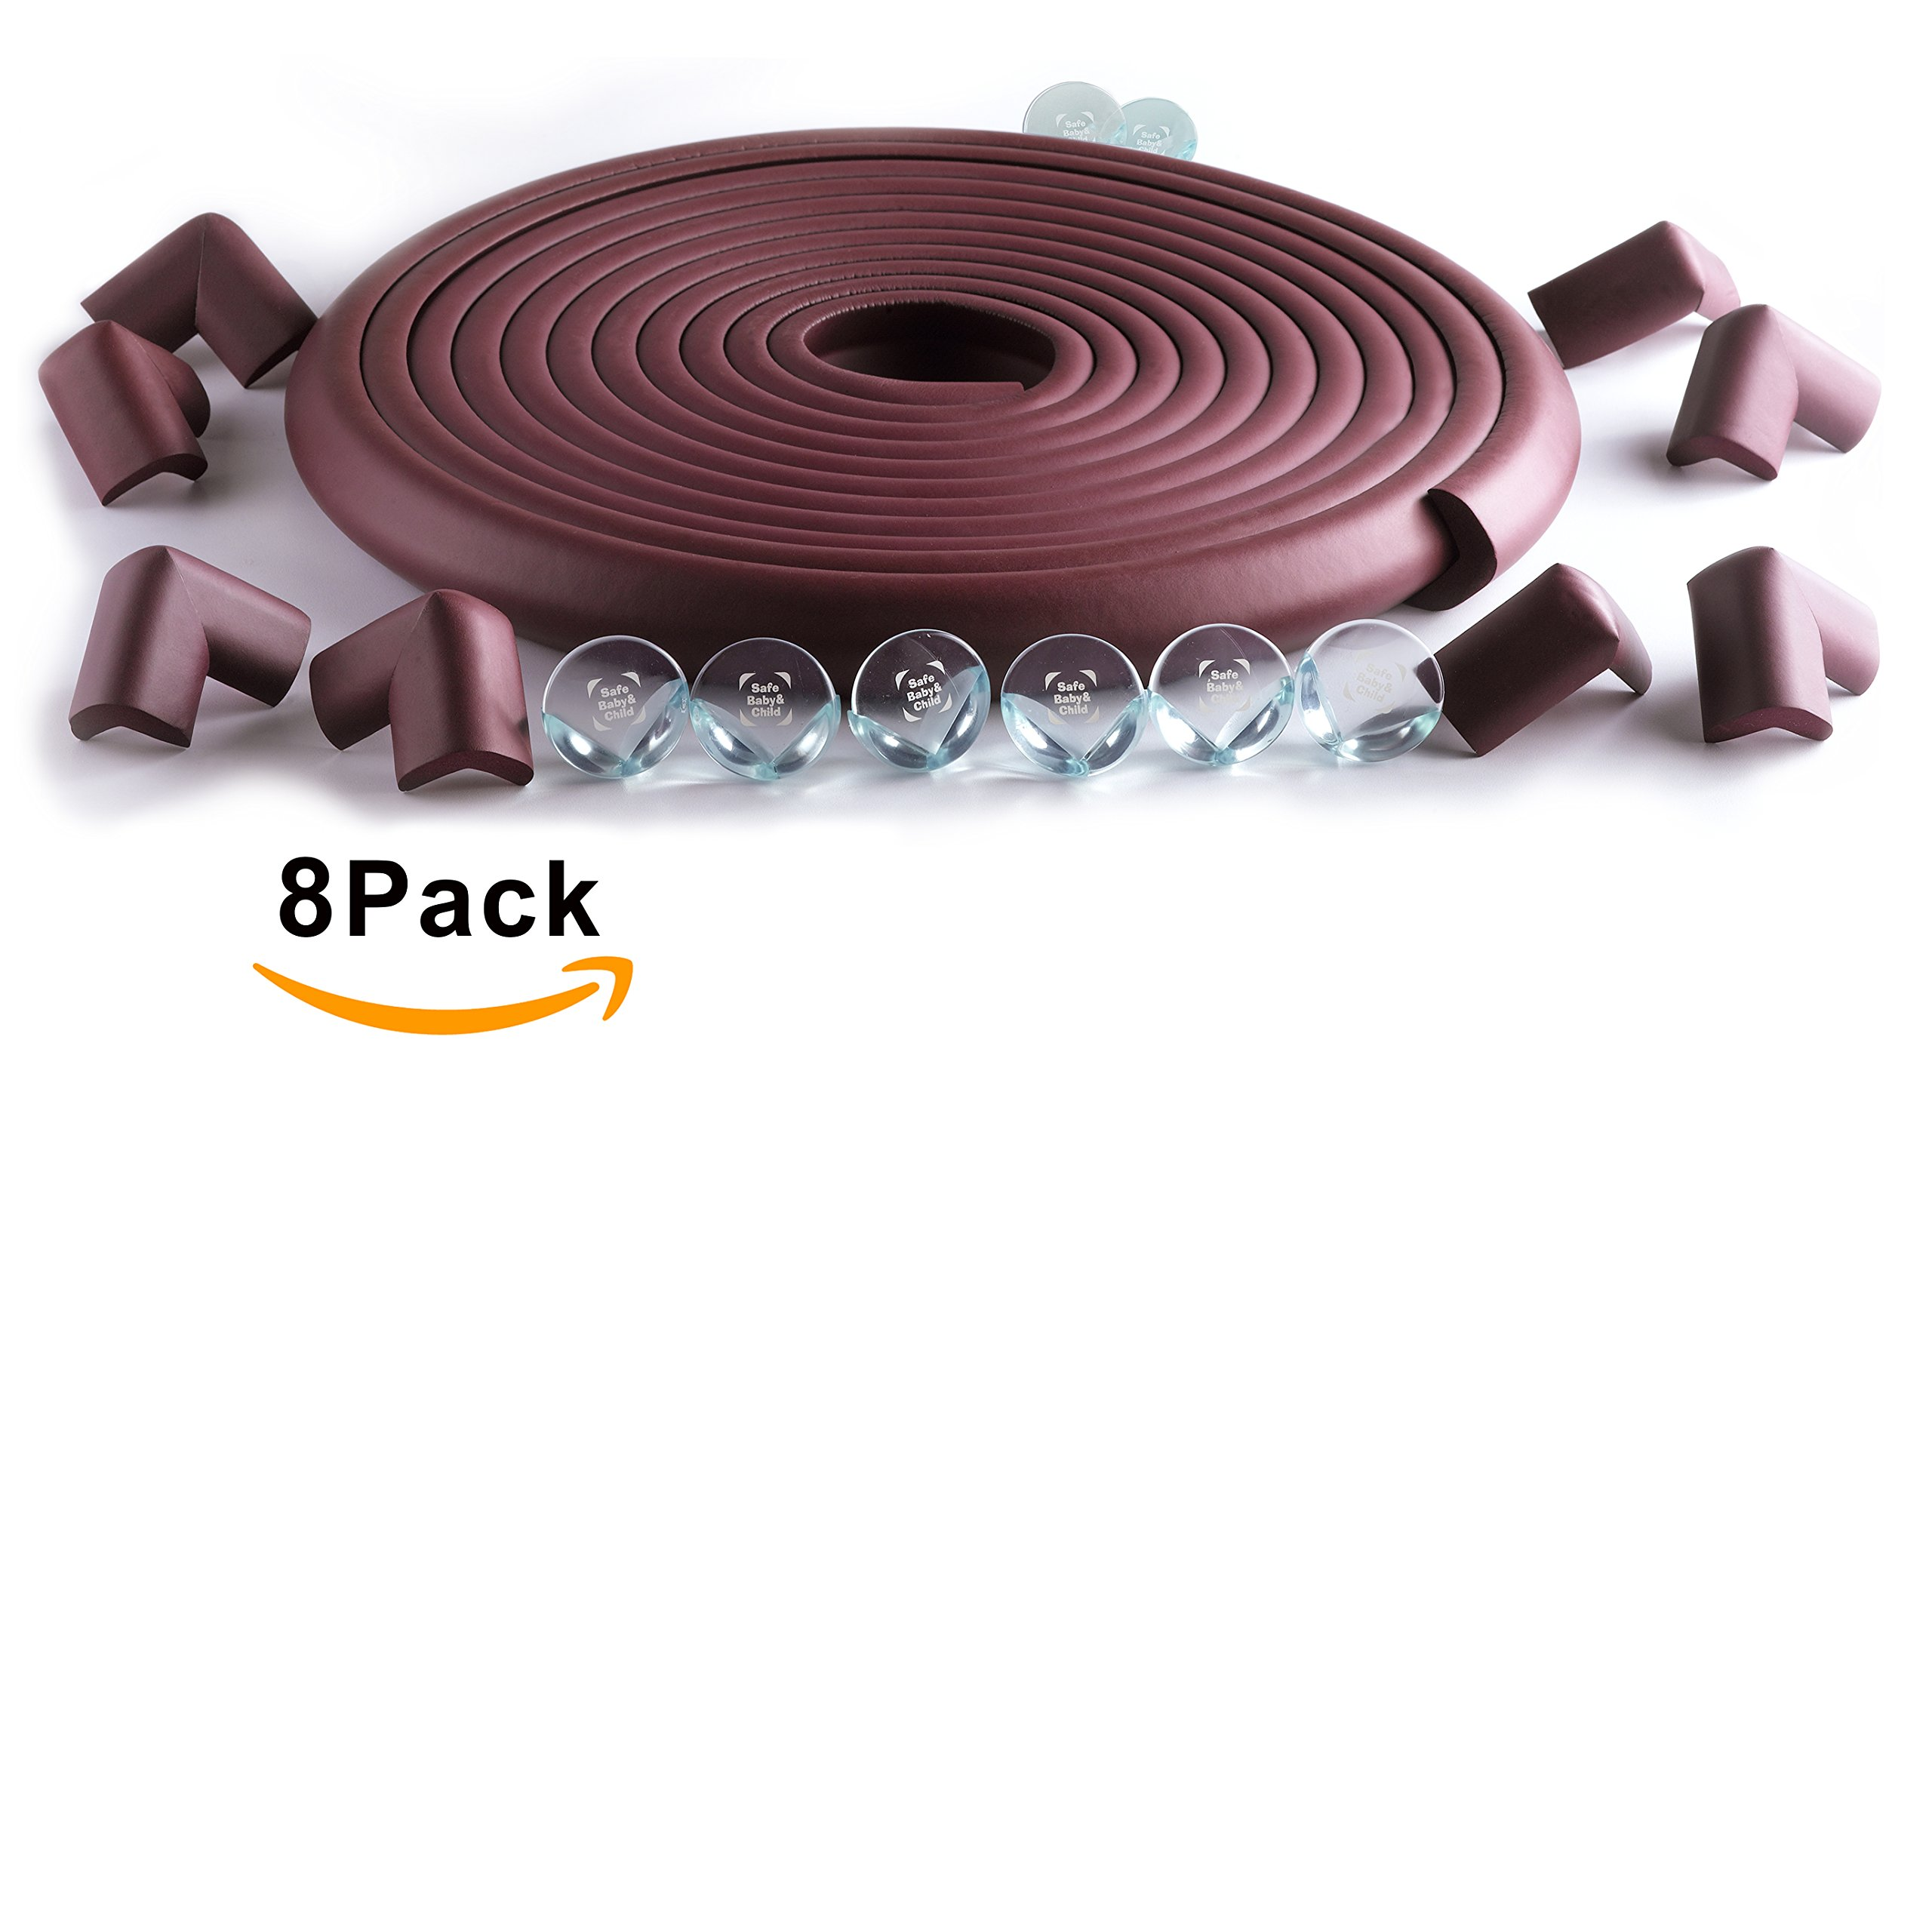 SafeBaby & Child Safety 23.2ft Long Set -16 Corner Guards Baby proofing Edge with Clear Protective Bumpers for Furniture. Cushion Foam Strip Brick pad childproof Fireplace Guard for Toddlers. Brown